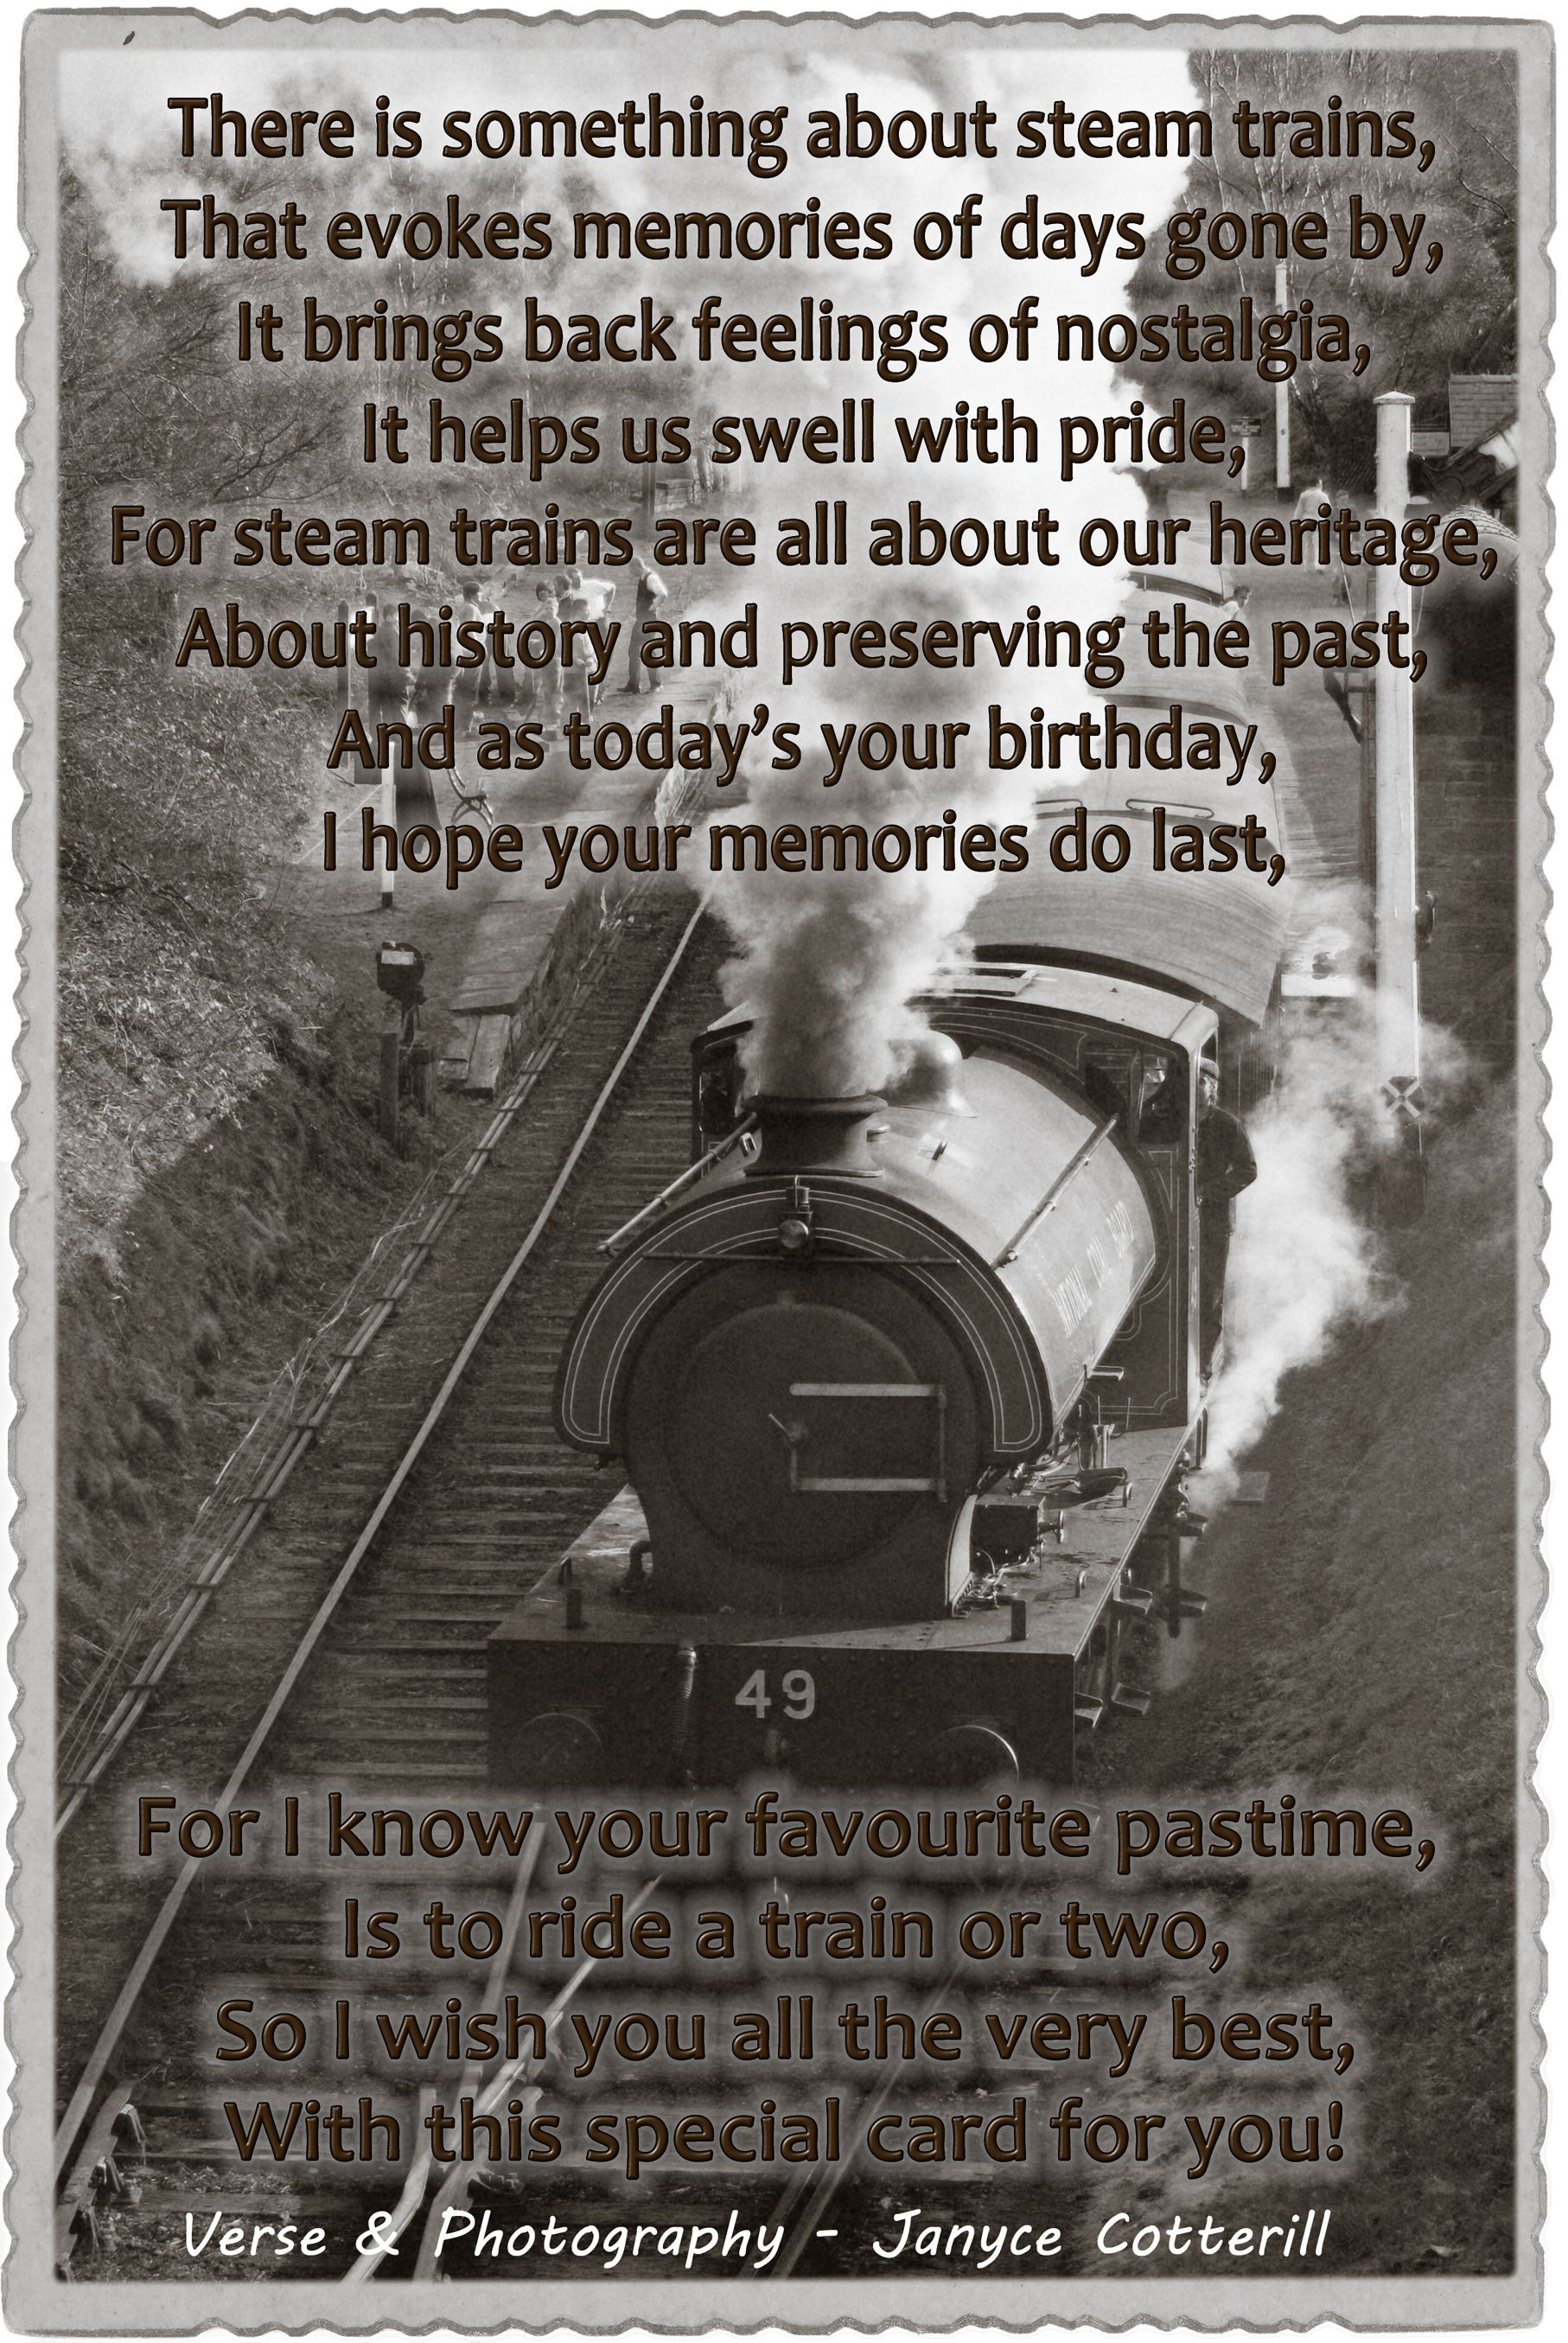 Steam Trains - this is my own verse, feel free to use it in your